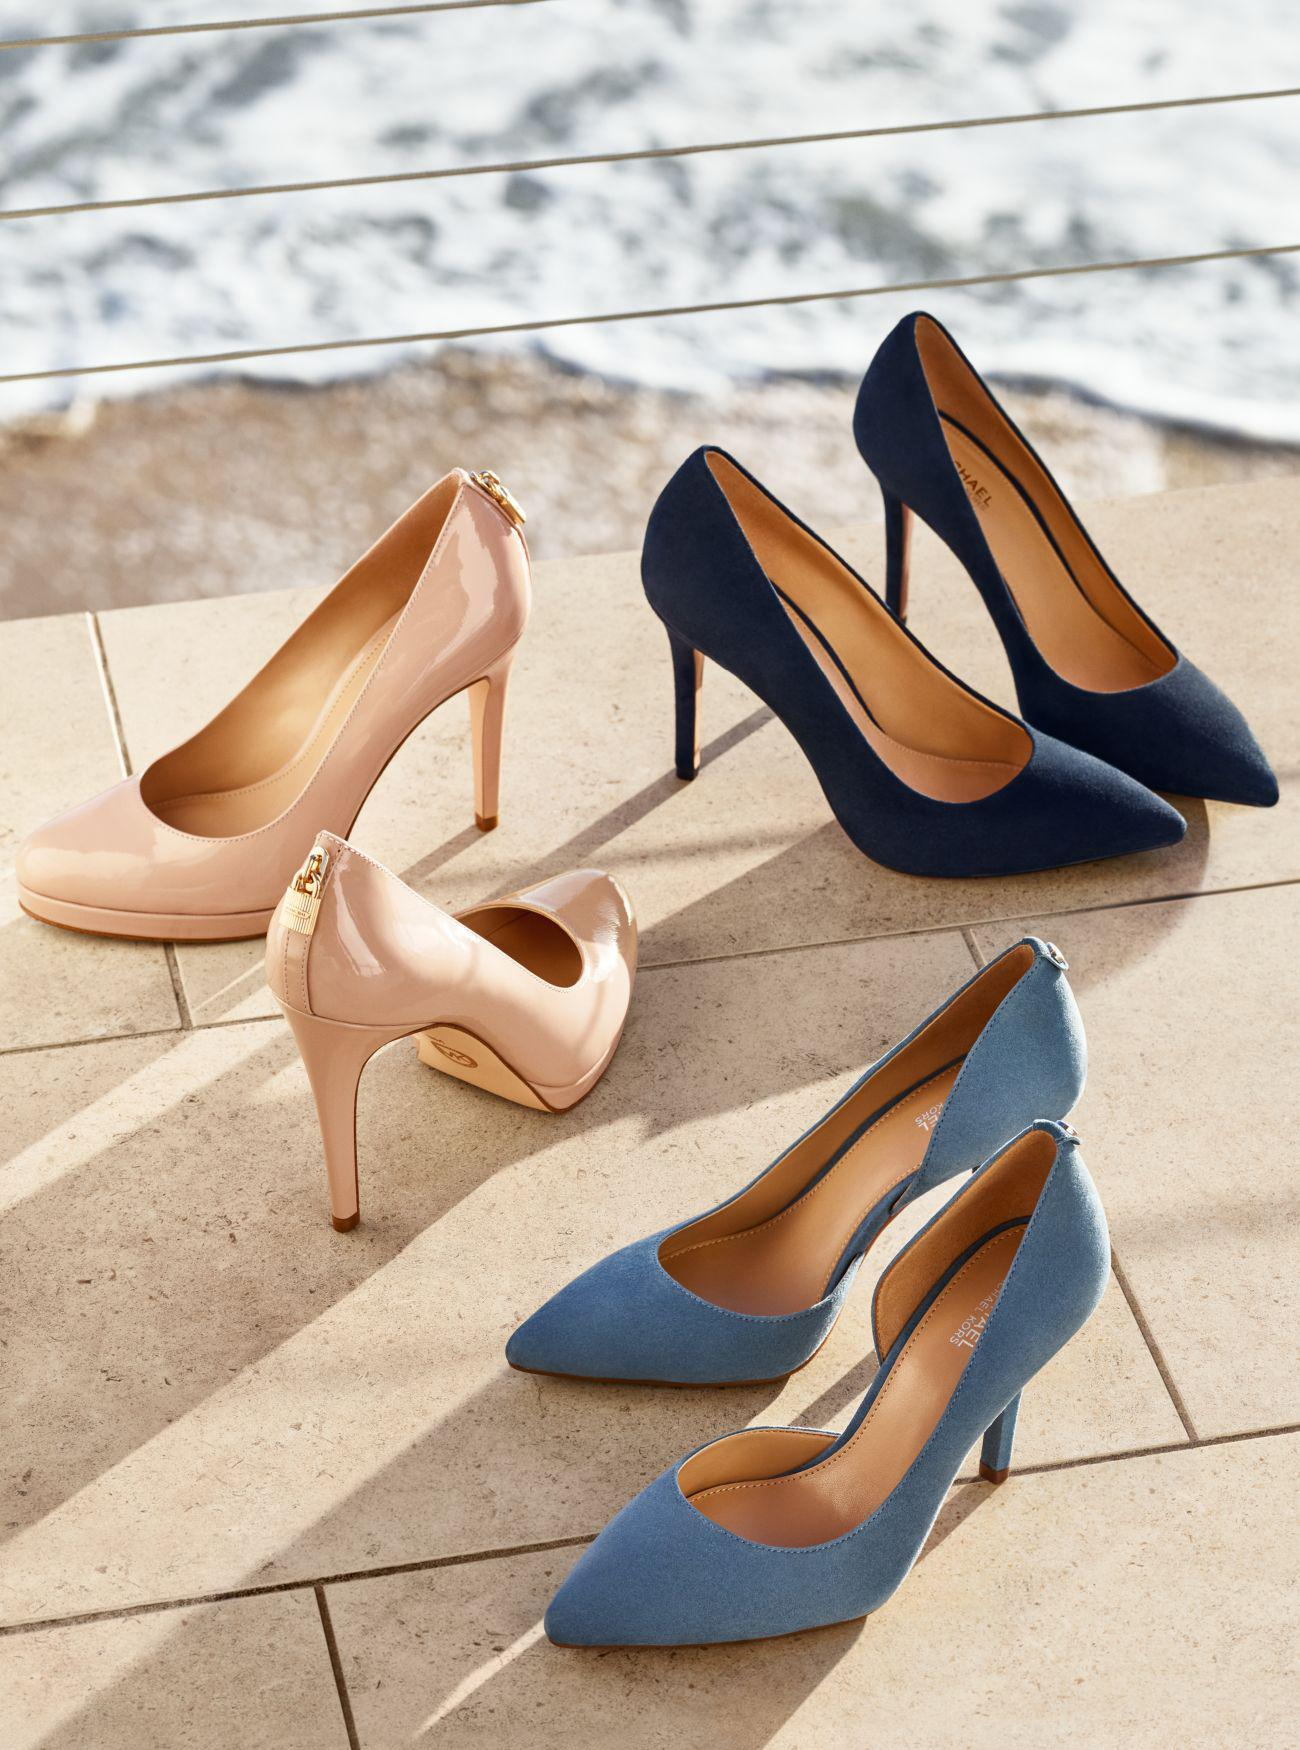 f73cfab5521 Lyst - Michael Kors Claire Suede Pump in Blue